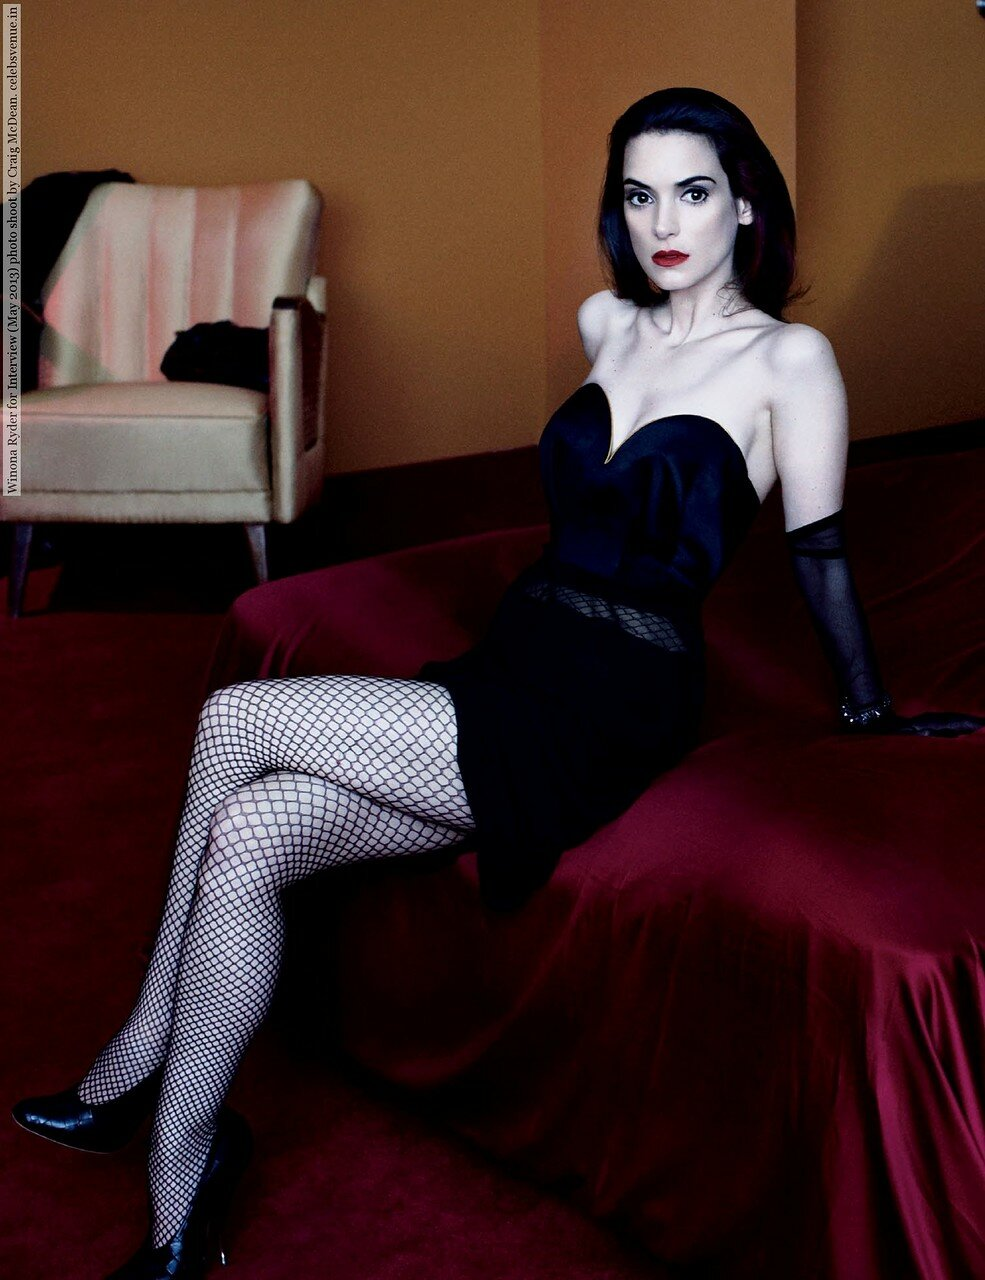 Winona Ryder for Interview (May 2013) photo shoot by Craig McDean